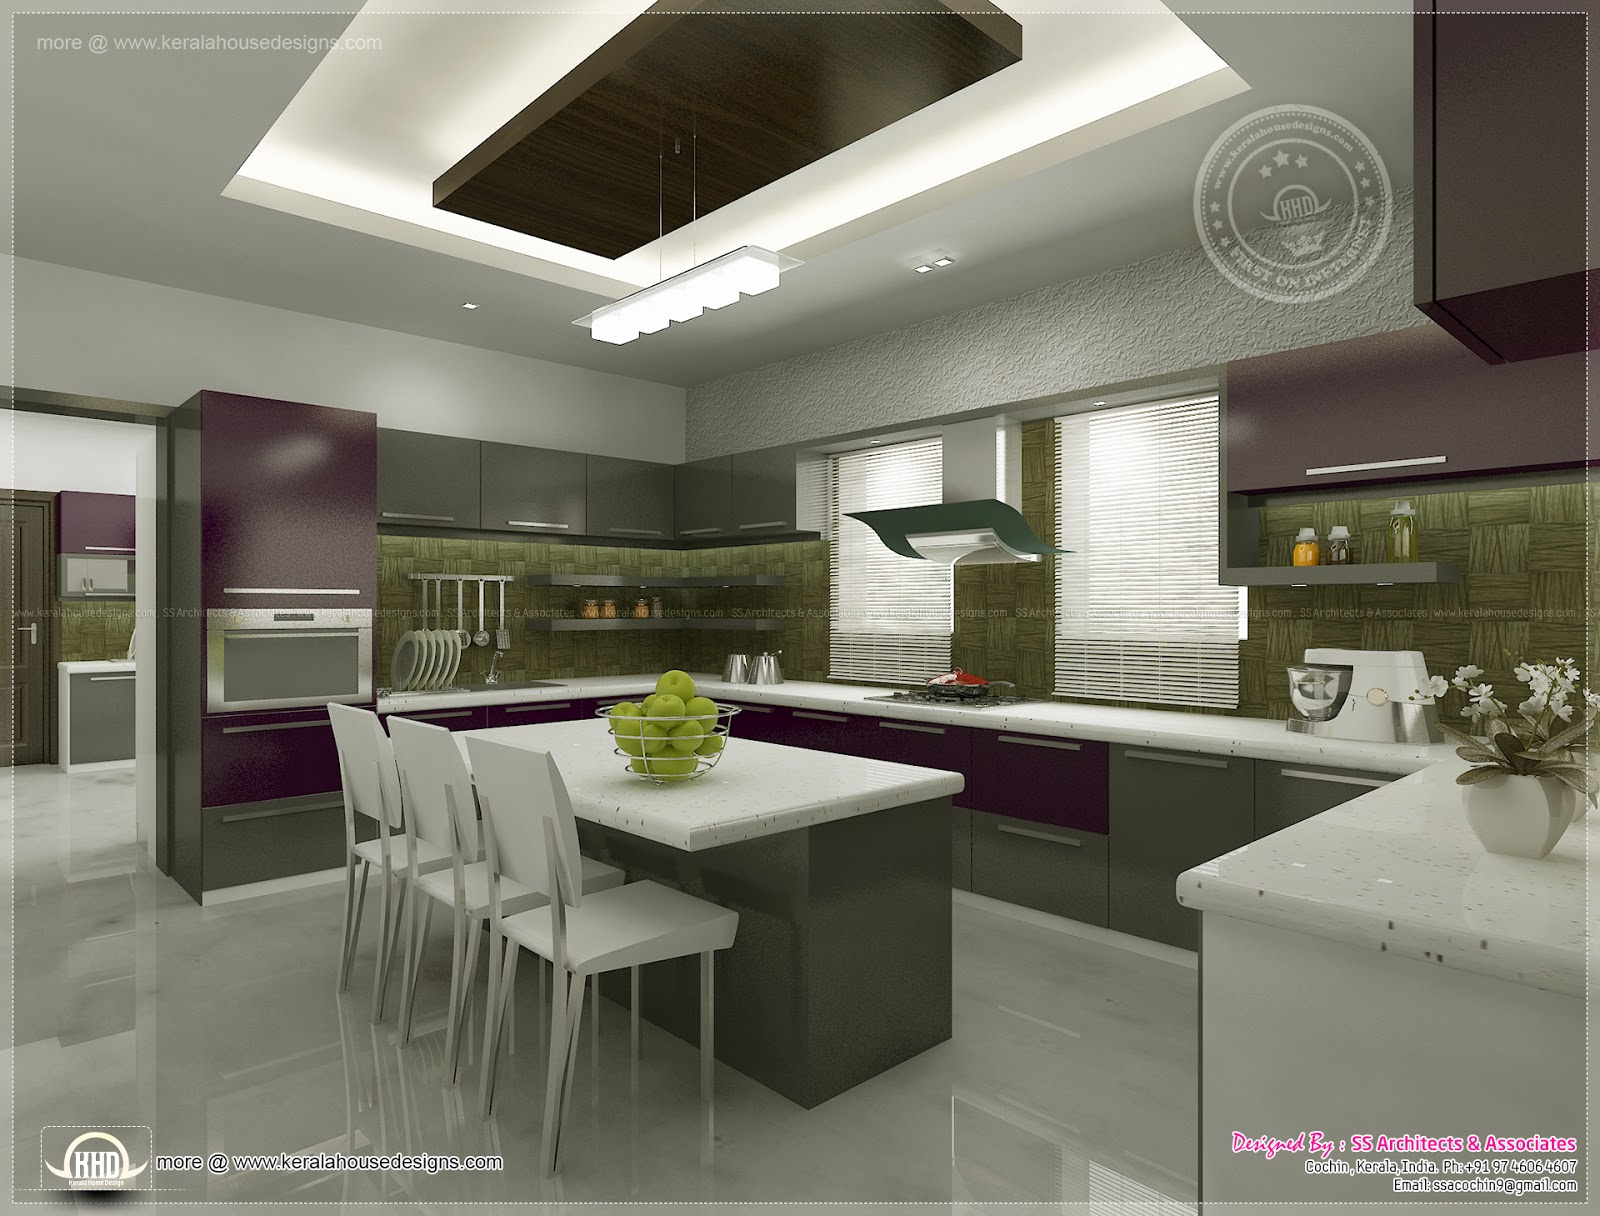 Kitchen interior views by ss architects cochin kerala for Home interior architecture